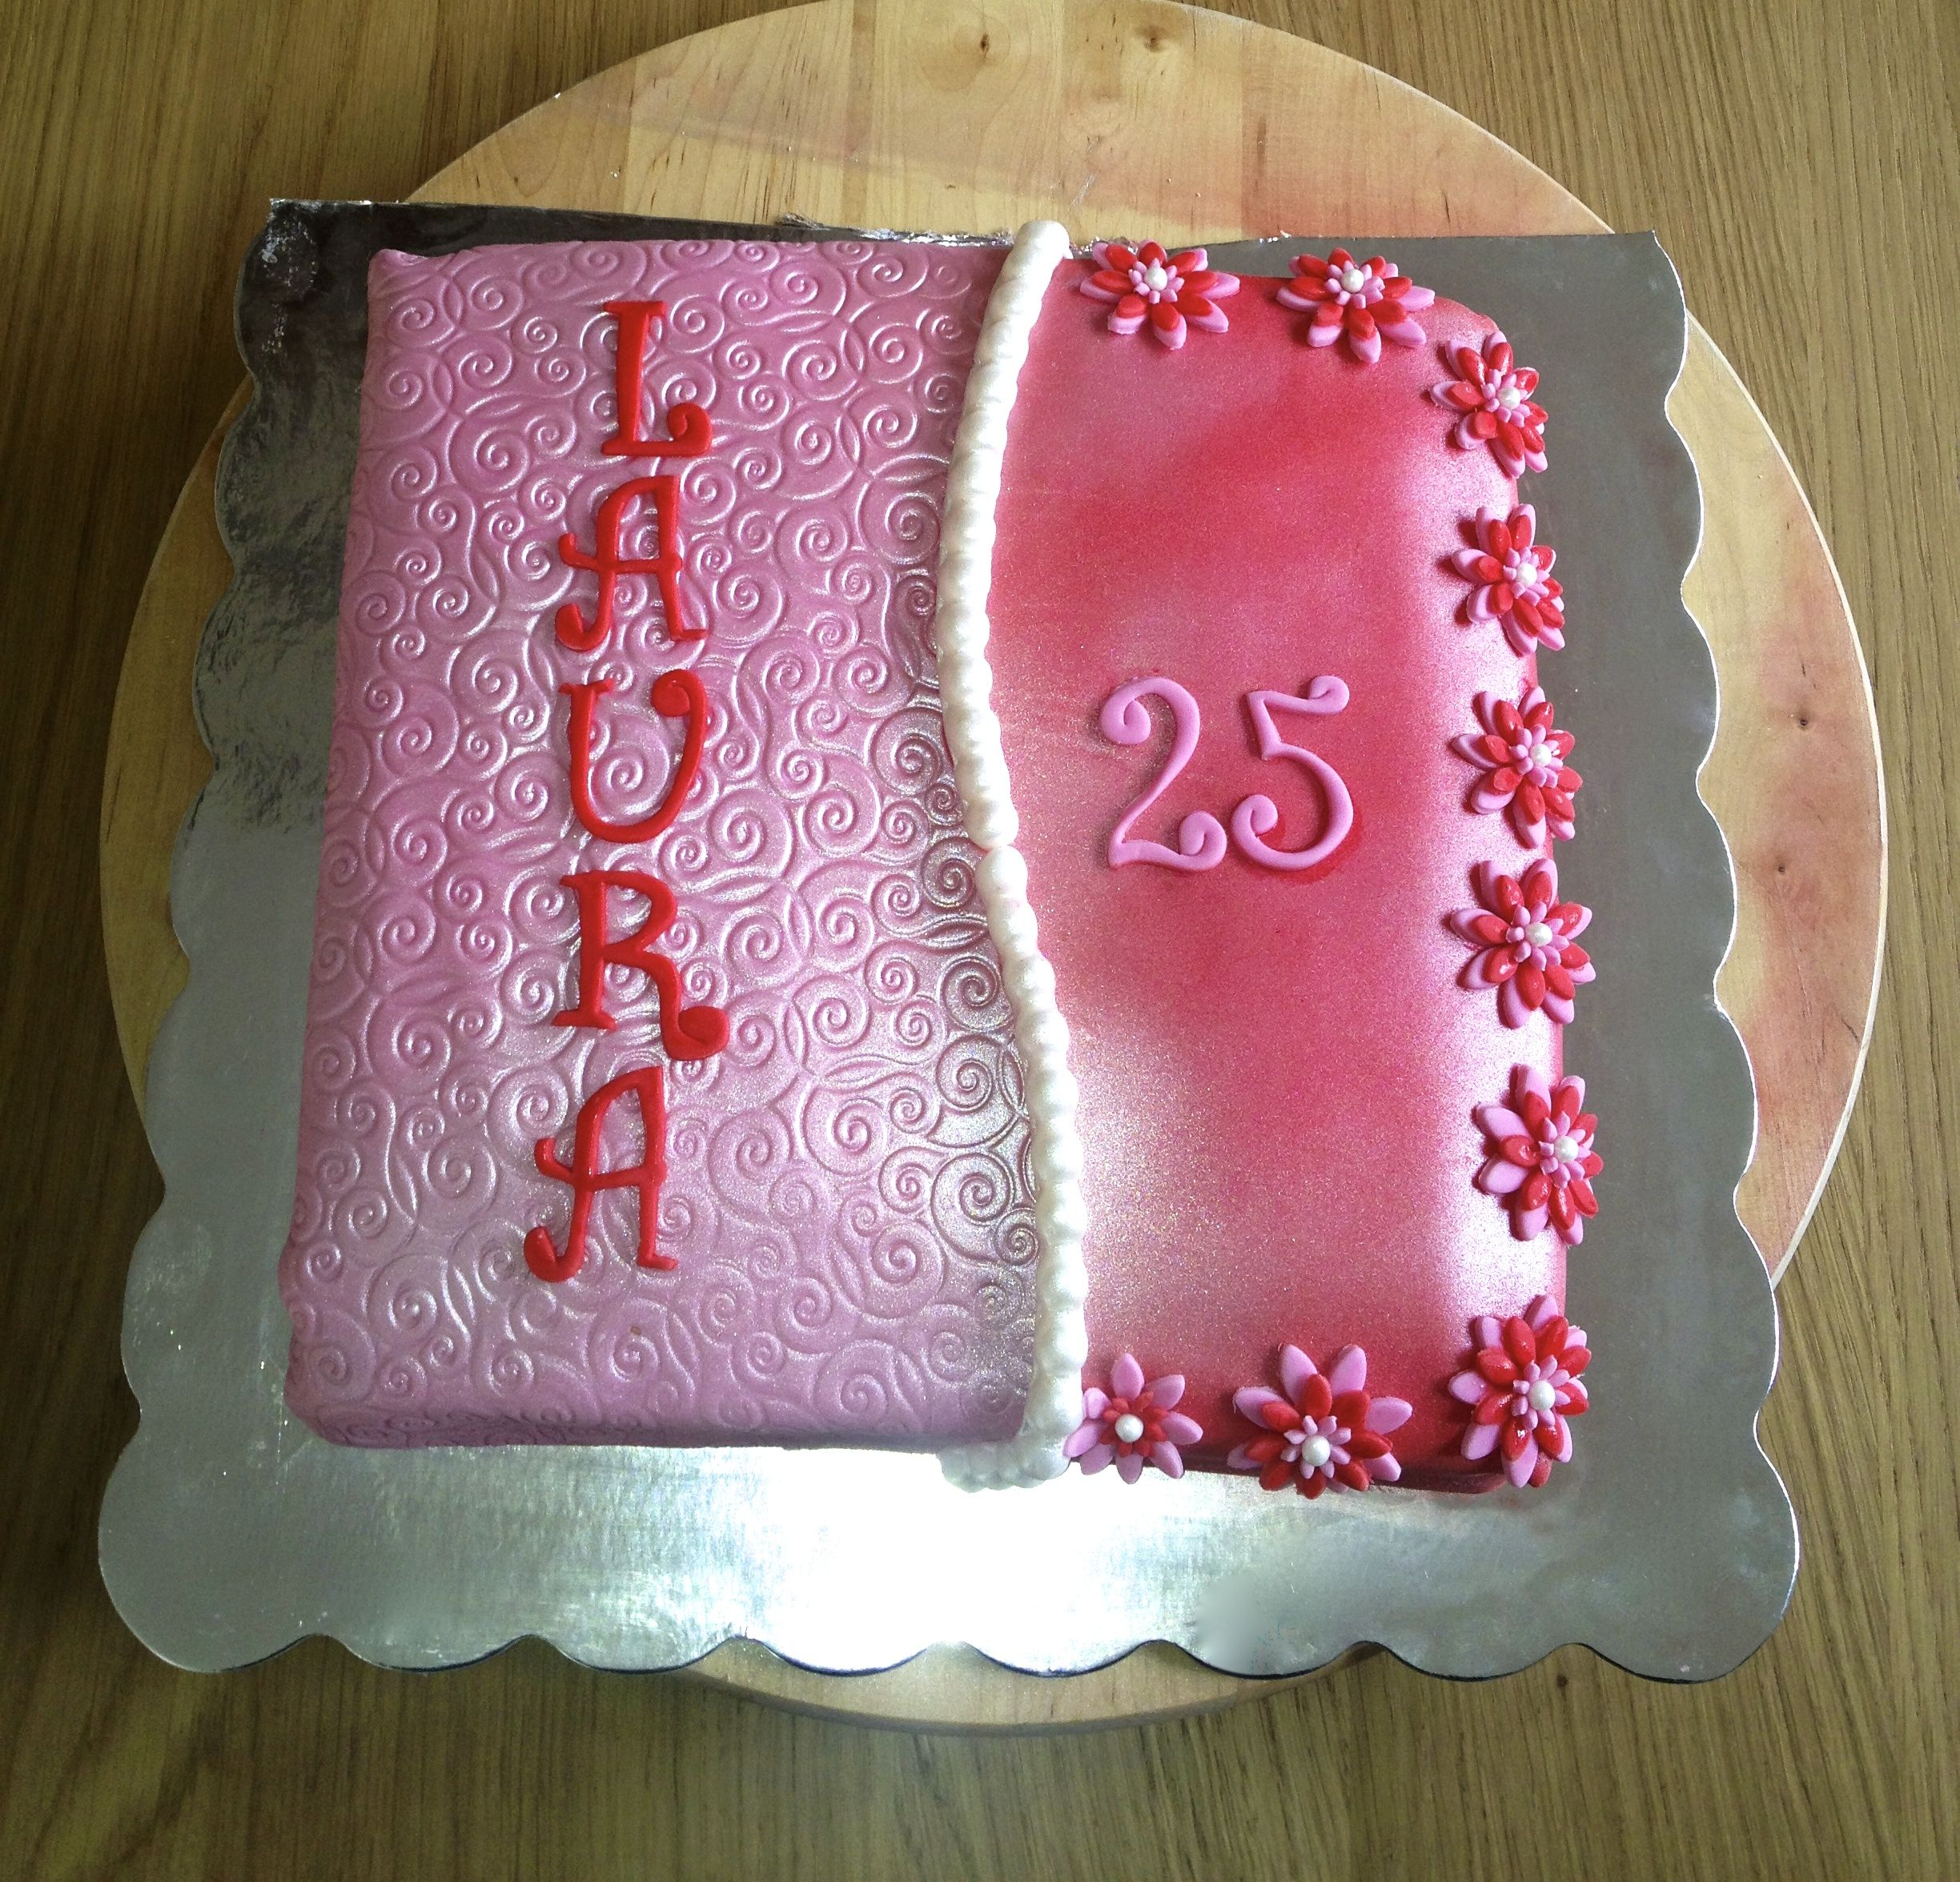 Sparkling red and pink fondant cake for super chic Laura